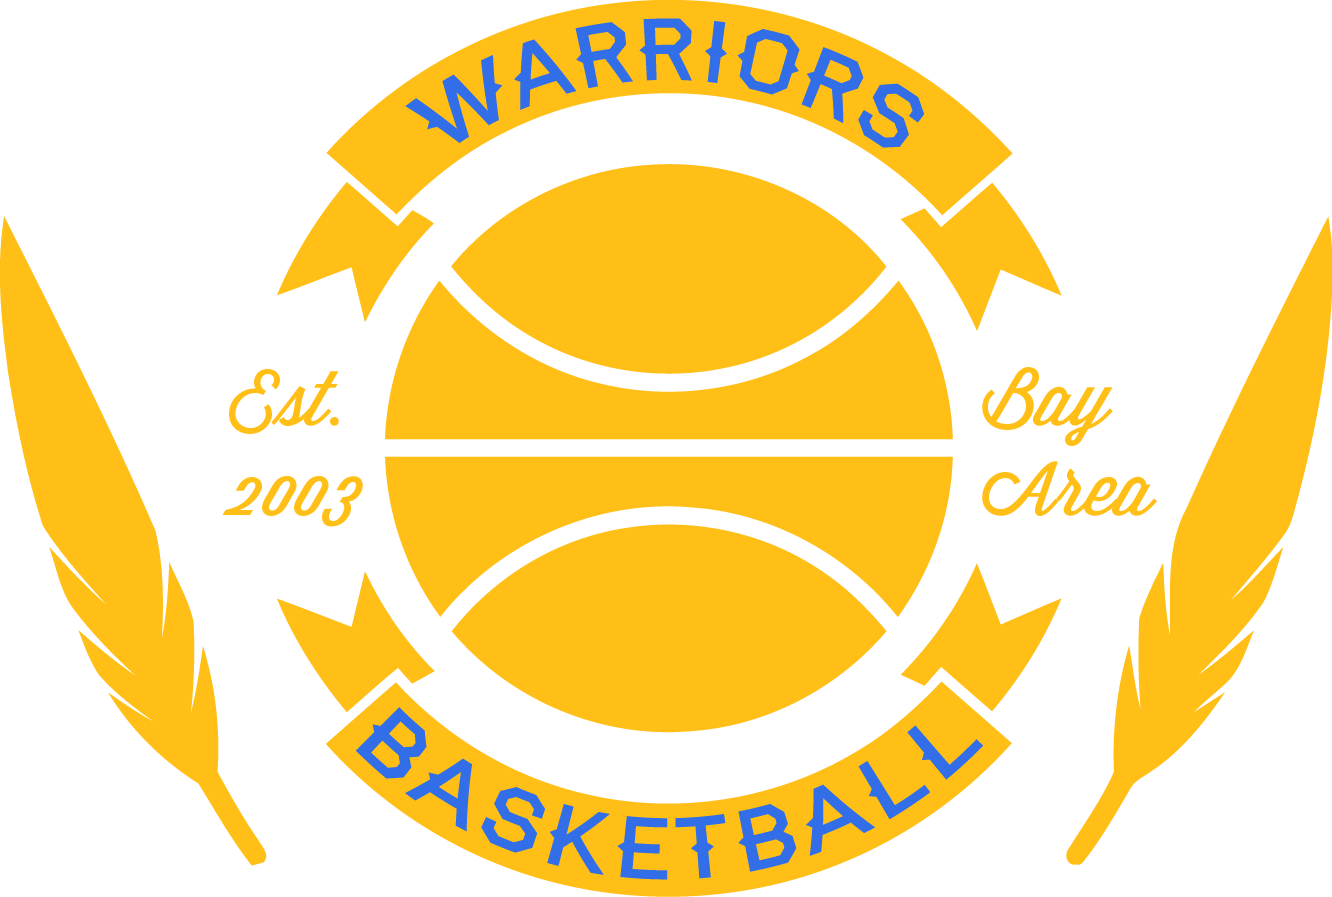 Bay Area Warriors